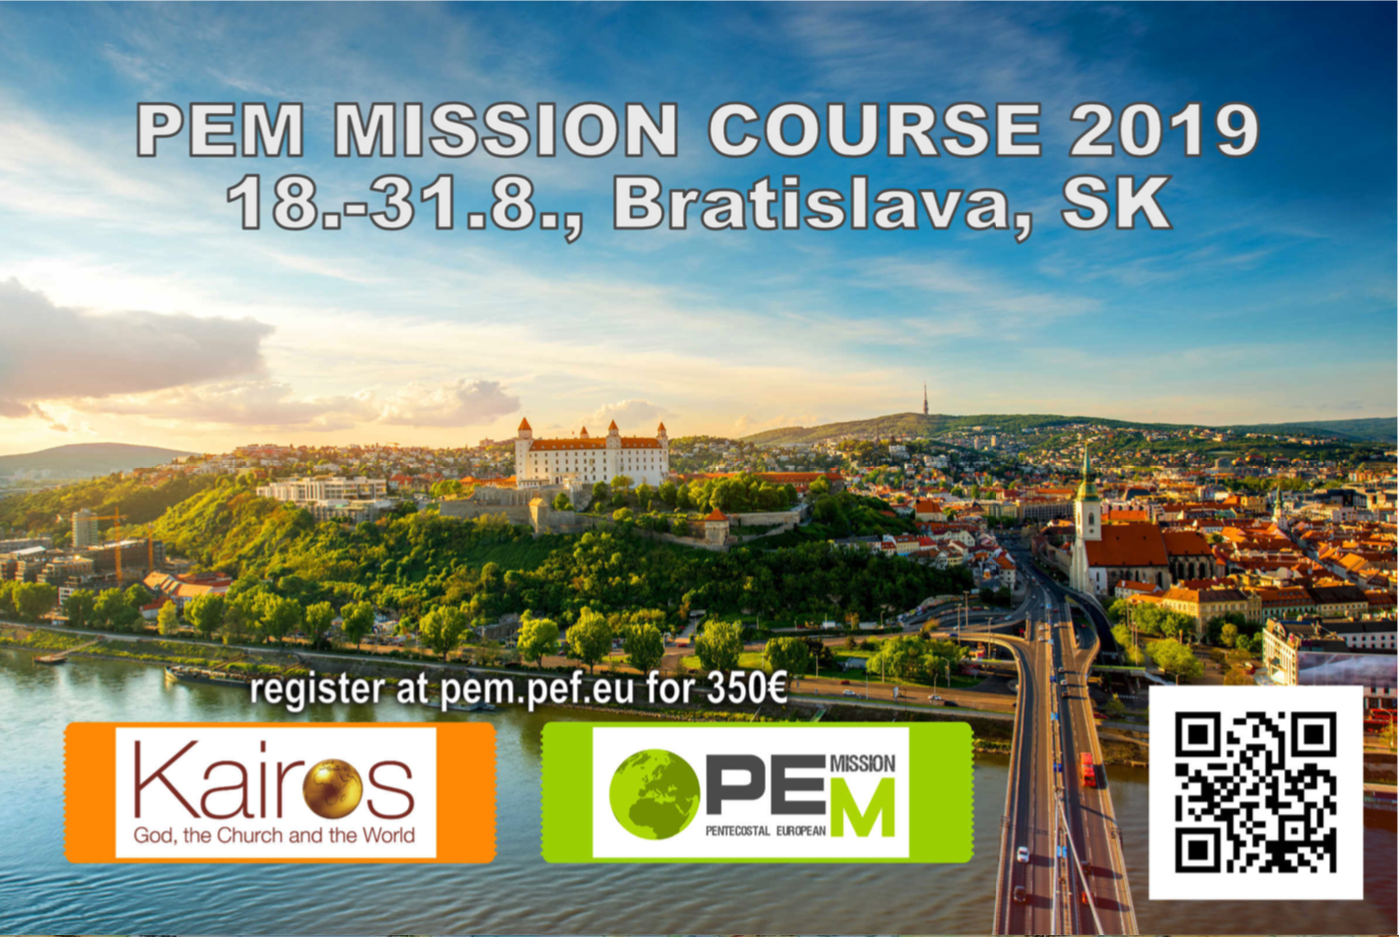 PEM Mission Course 2019 In Slovakia